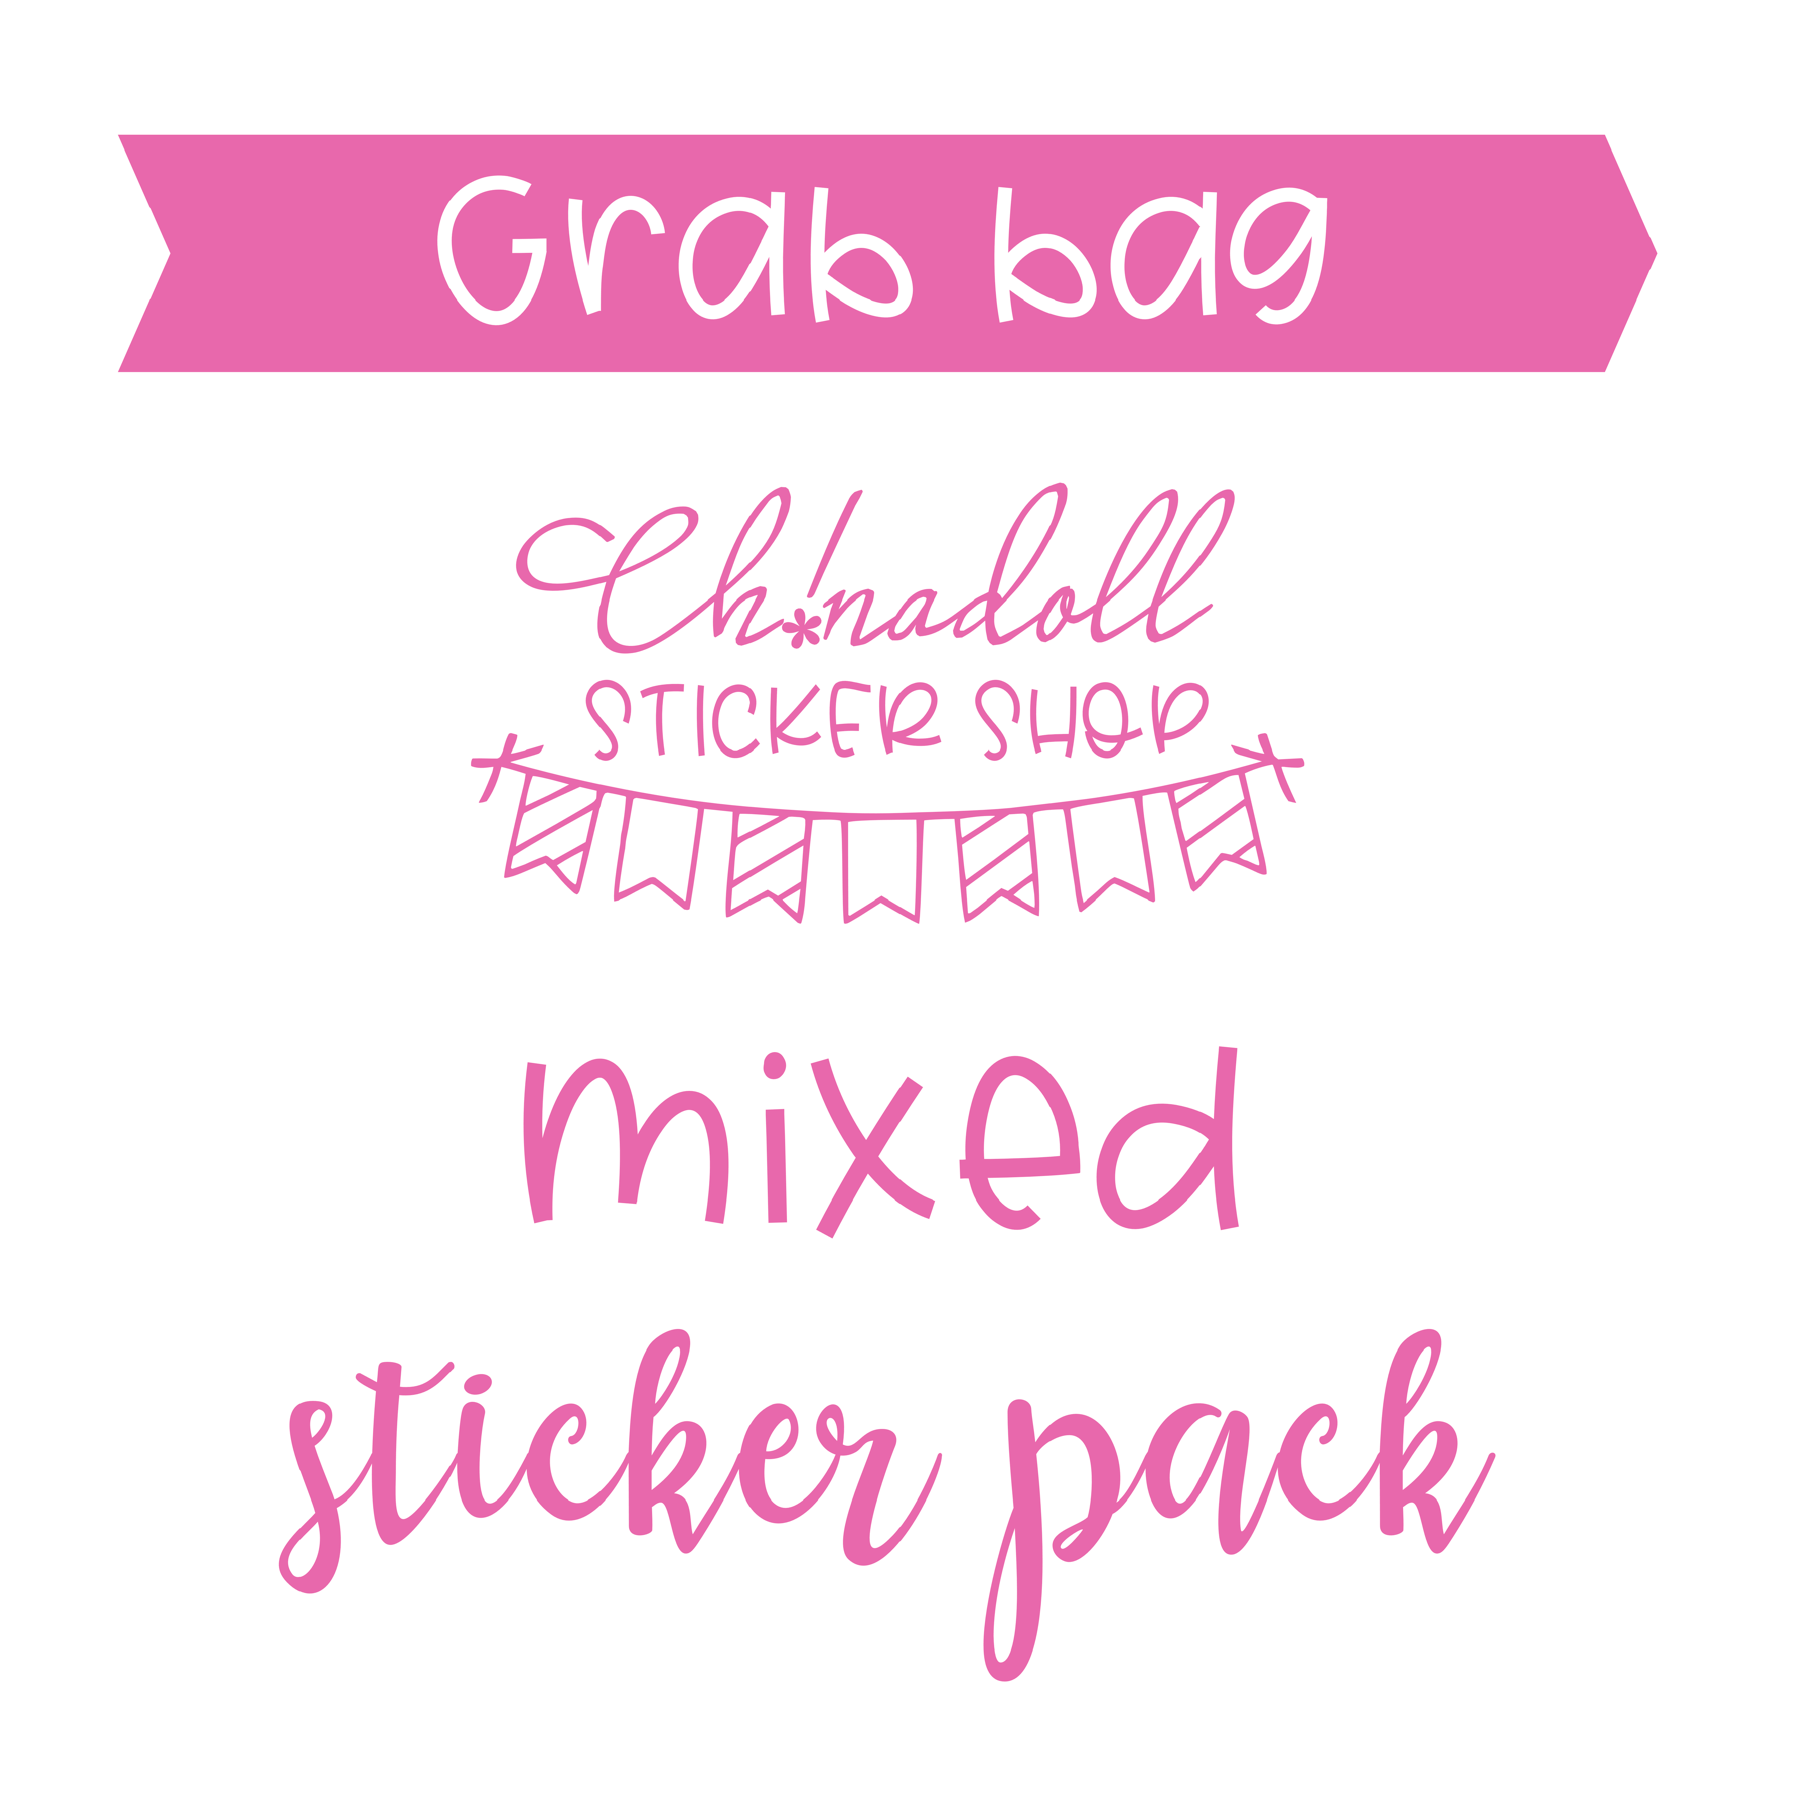 Grab bag - mixed sticker pack | ch!nadoll sticker shop